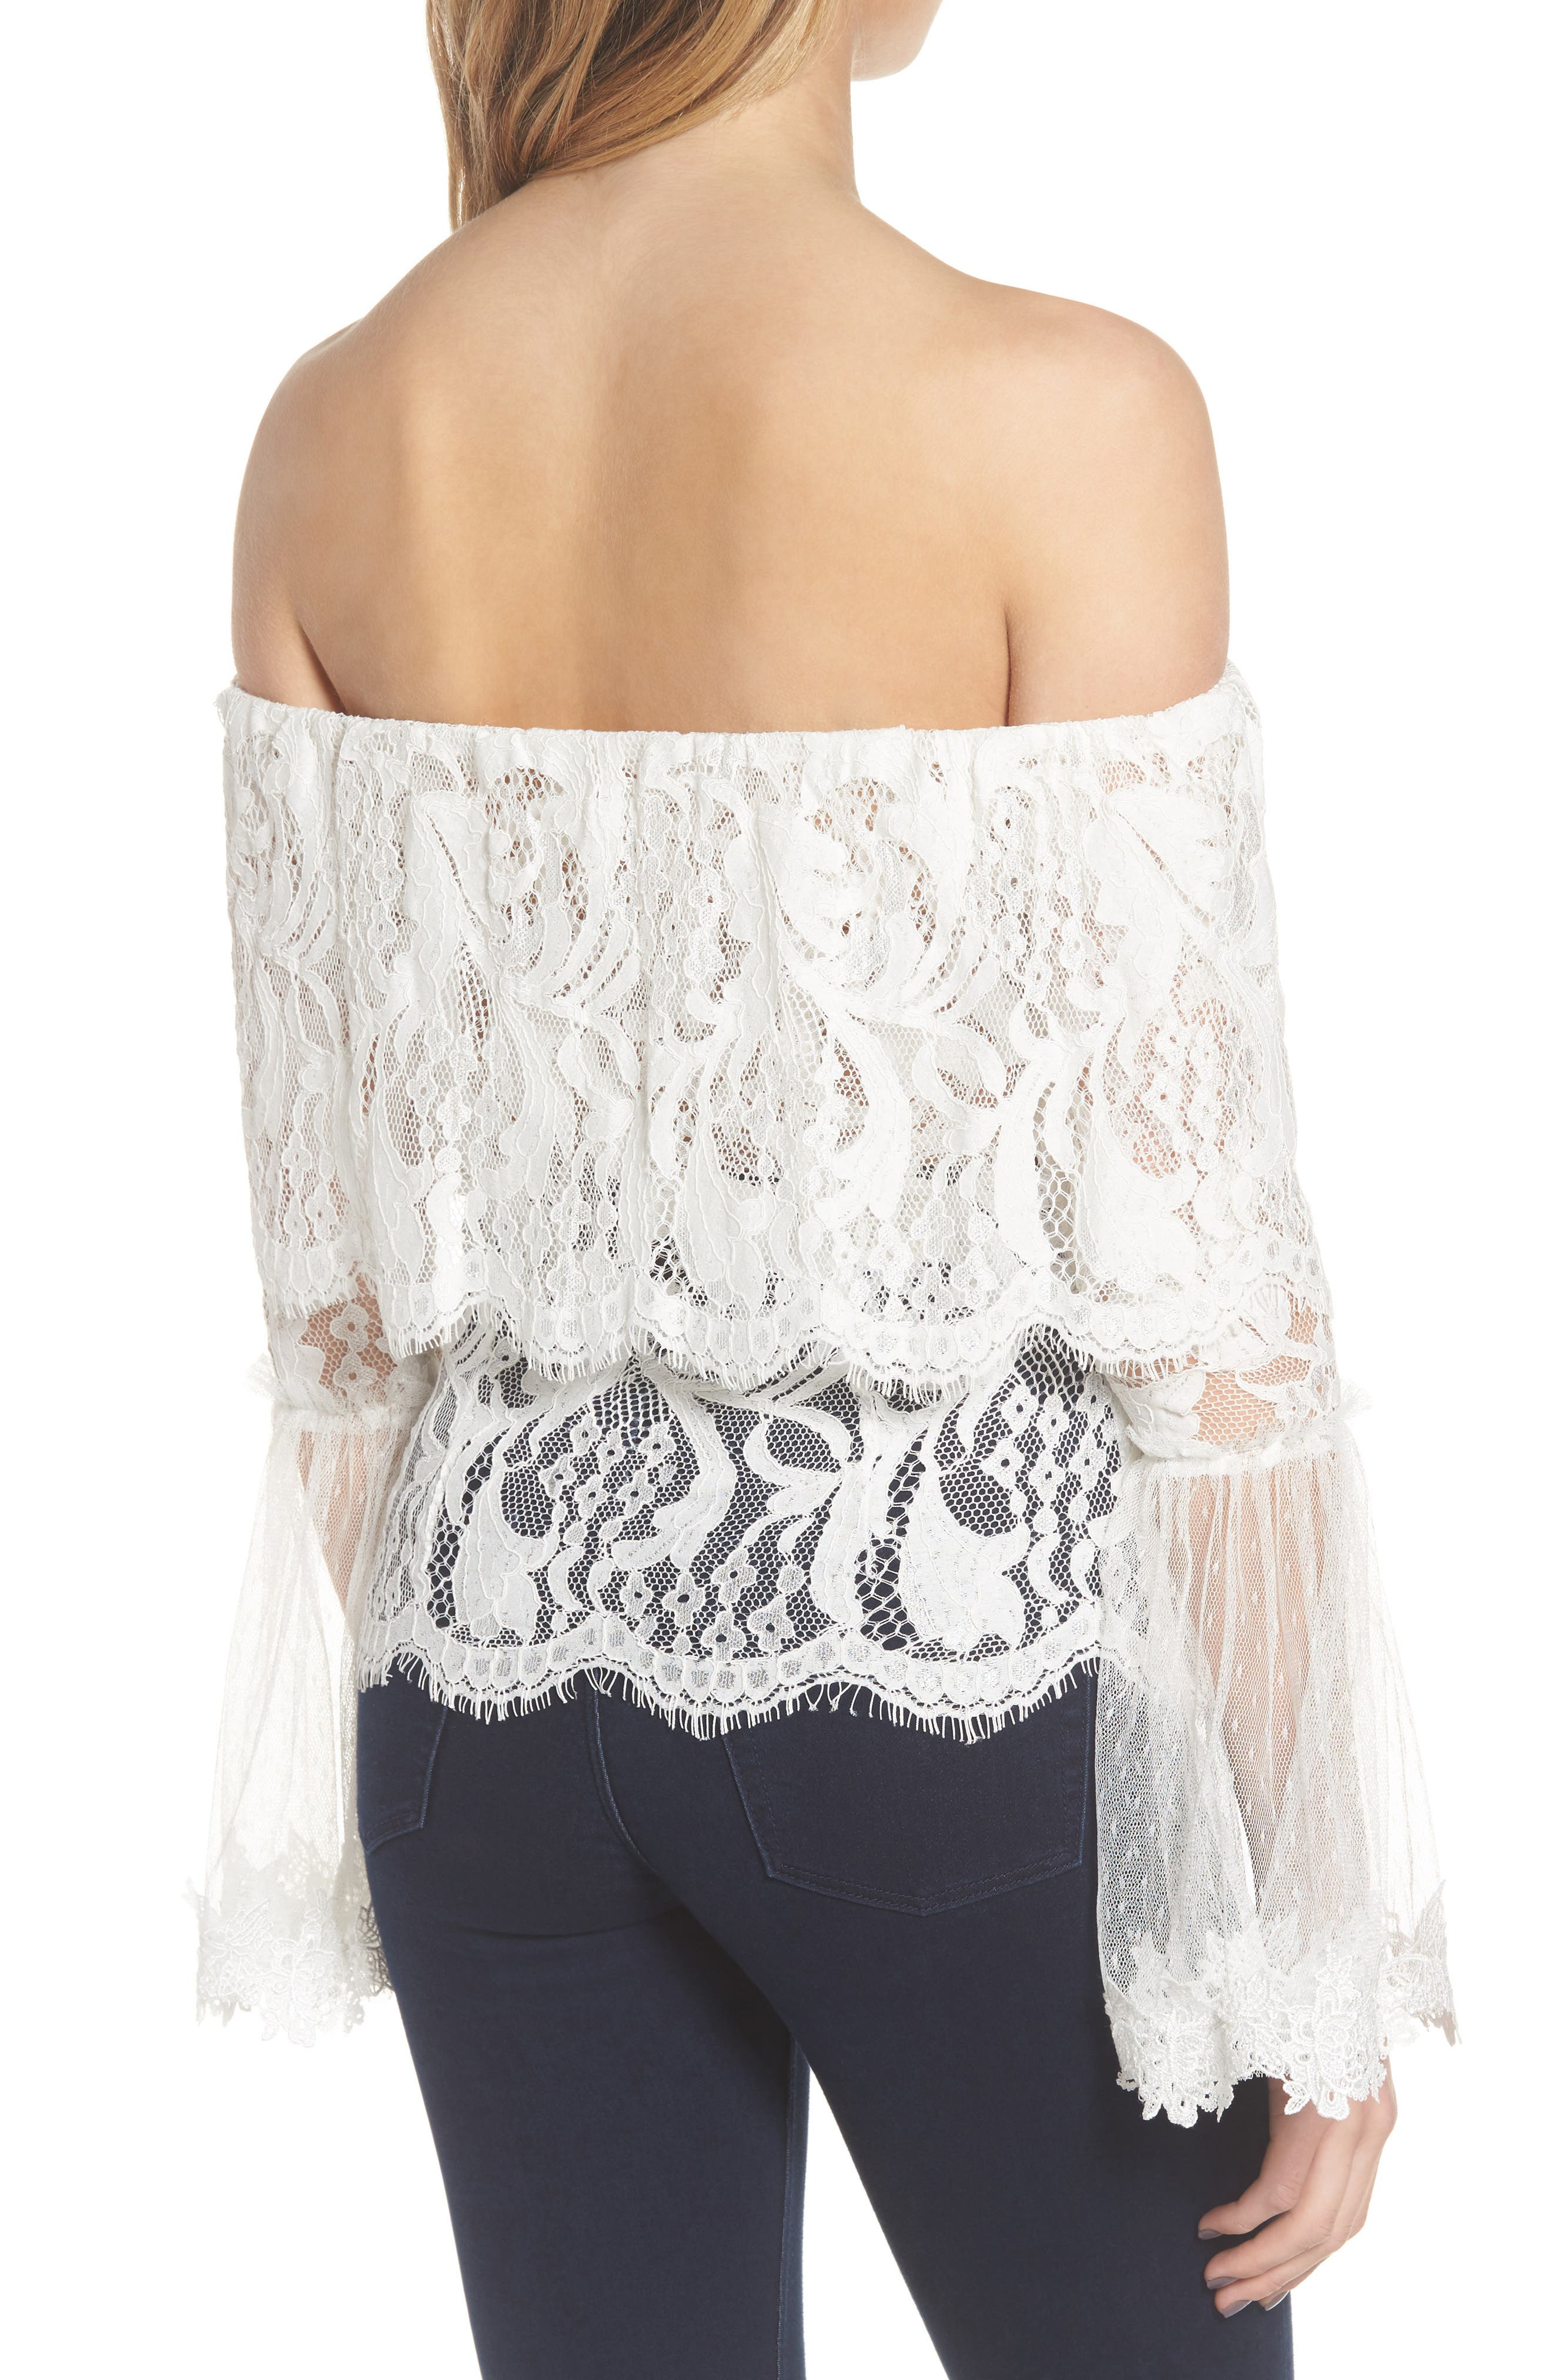 If You Dare Lace Off the Shoulder Blouse,                             Alternate thumbnail 2, color,                             Ivory